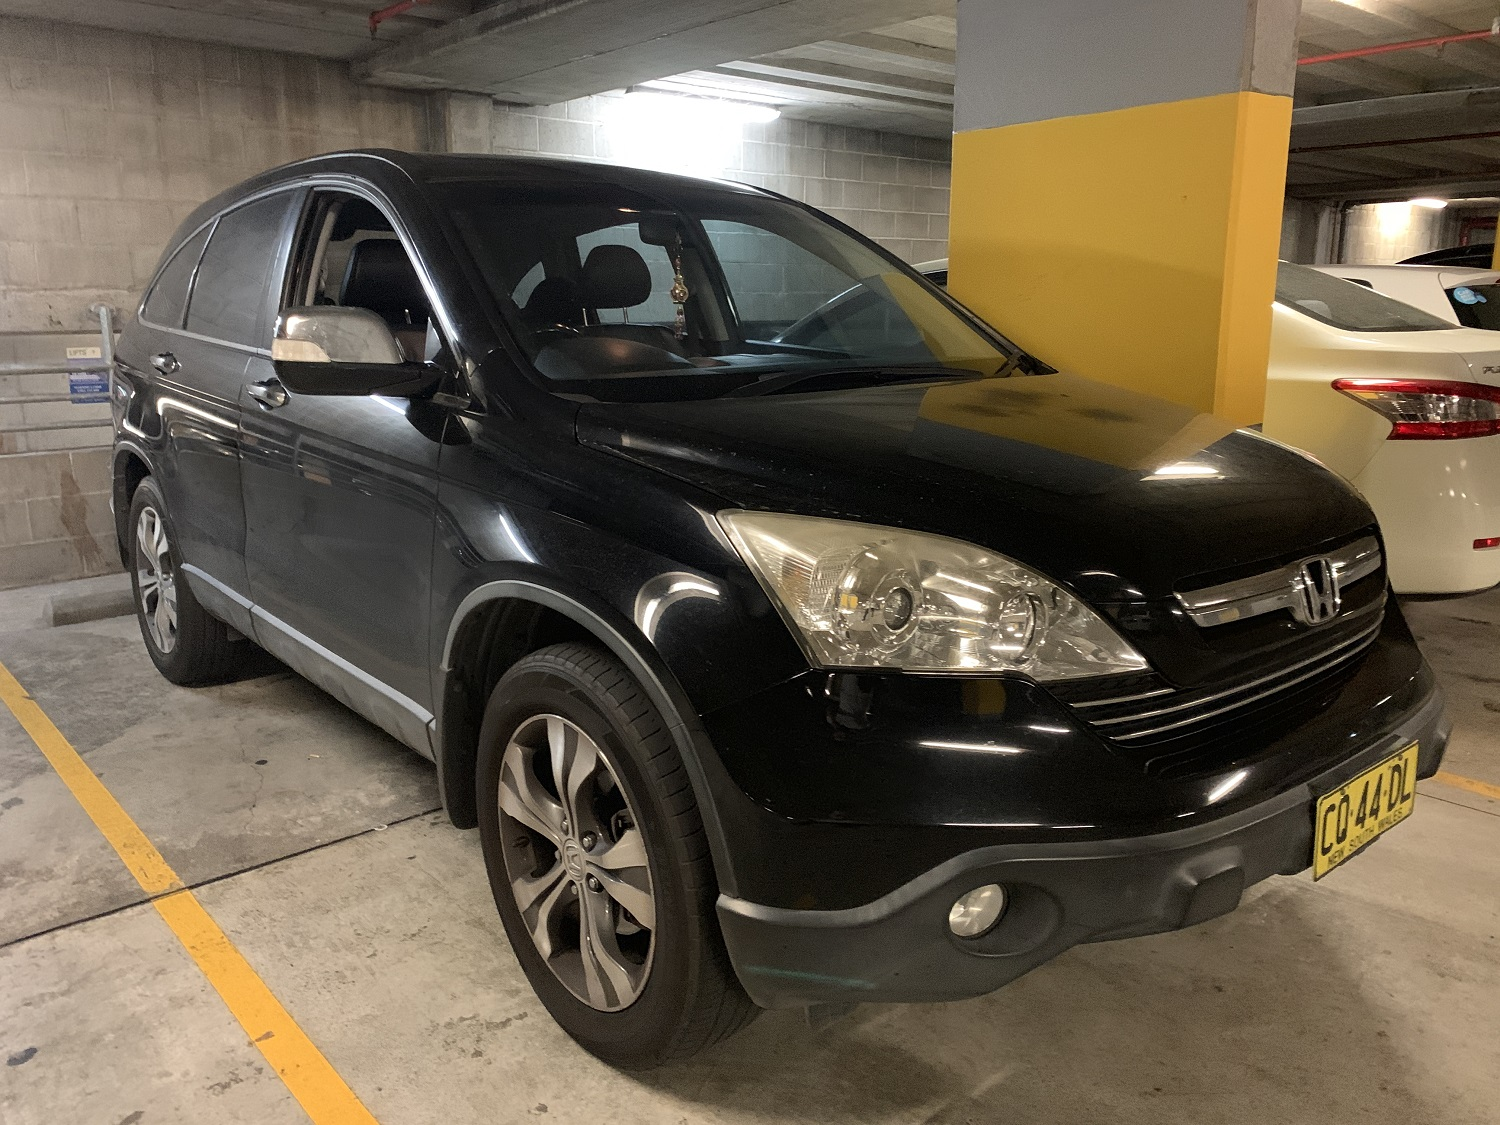 Picture of Shirly's 2008 Honda CRV